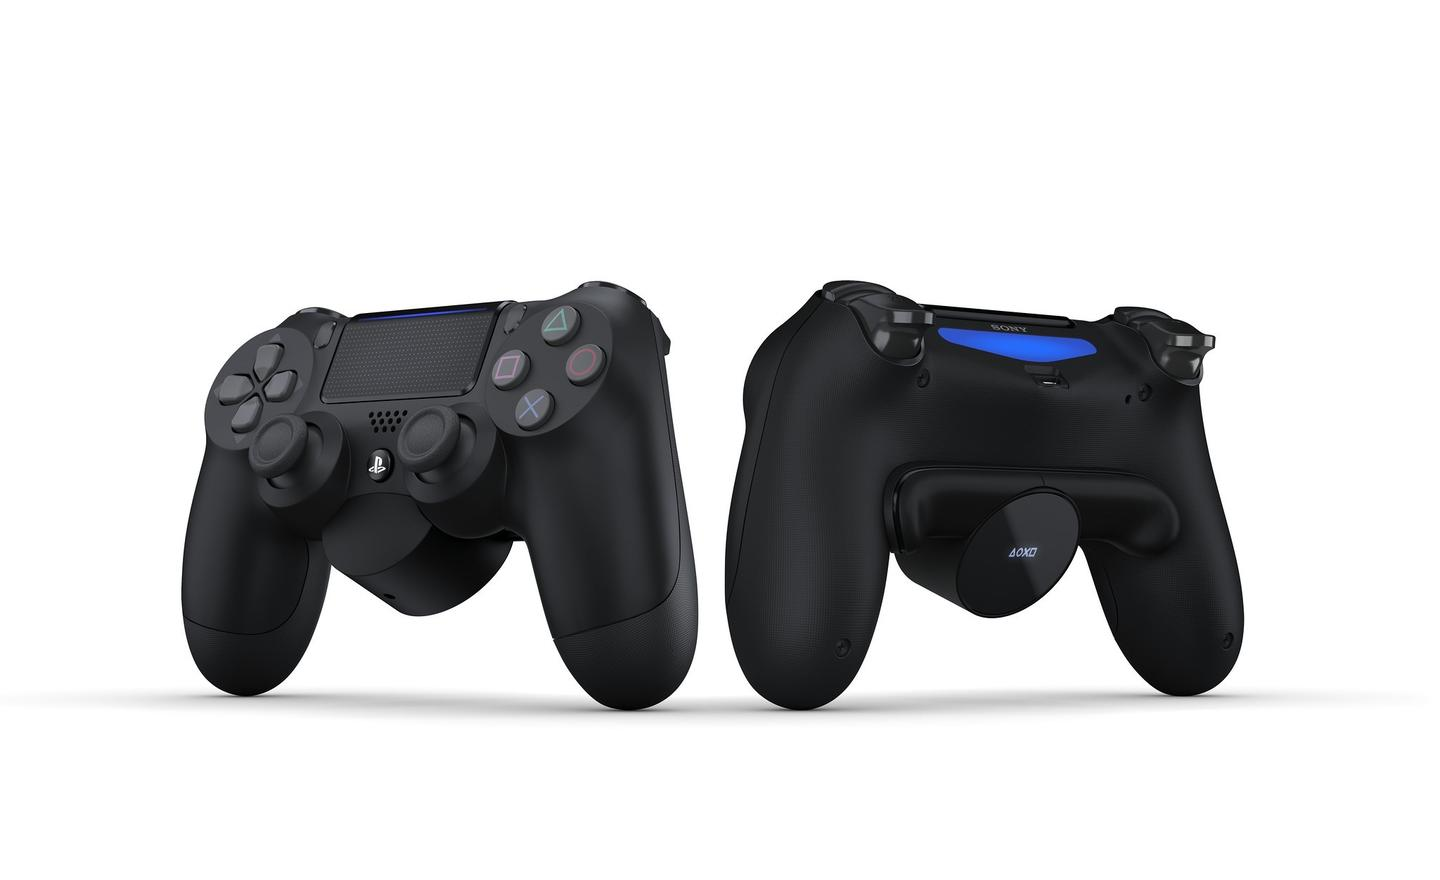 Sony has unveiled the Back Button Attachment for the PS4 controller